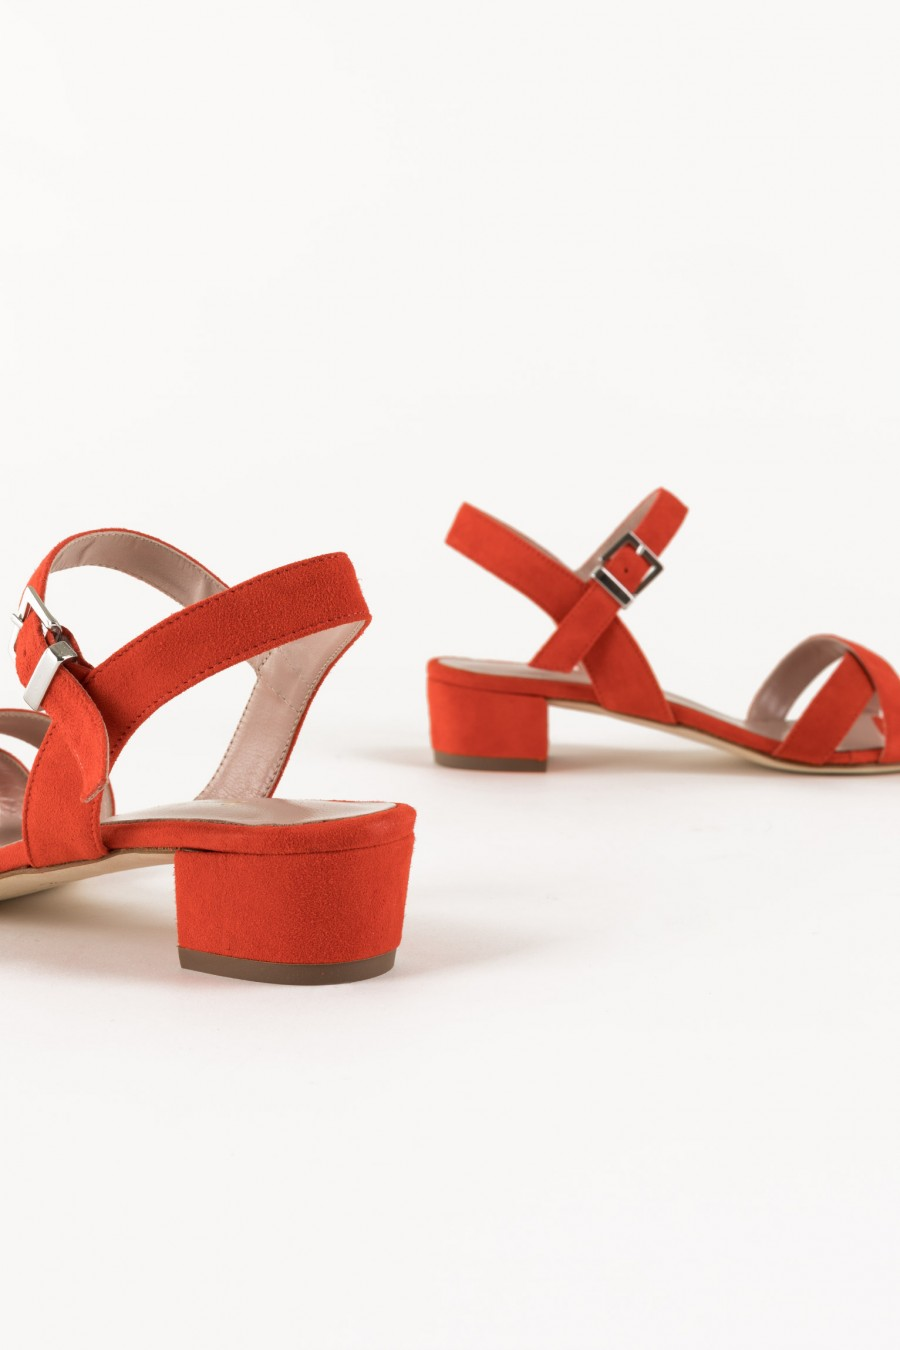 Sandals with low and large heel